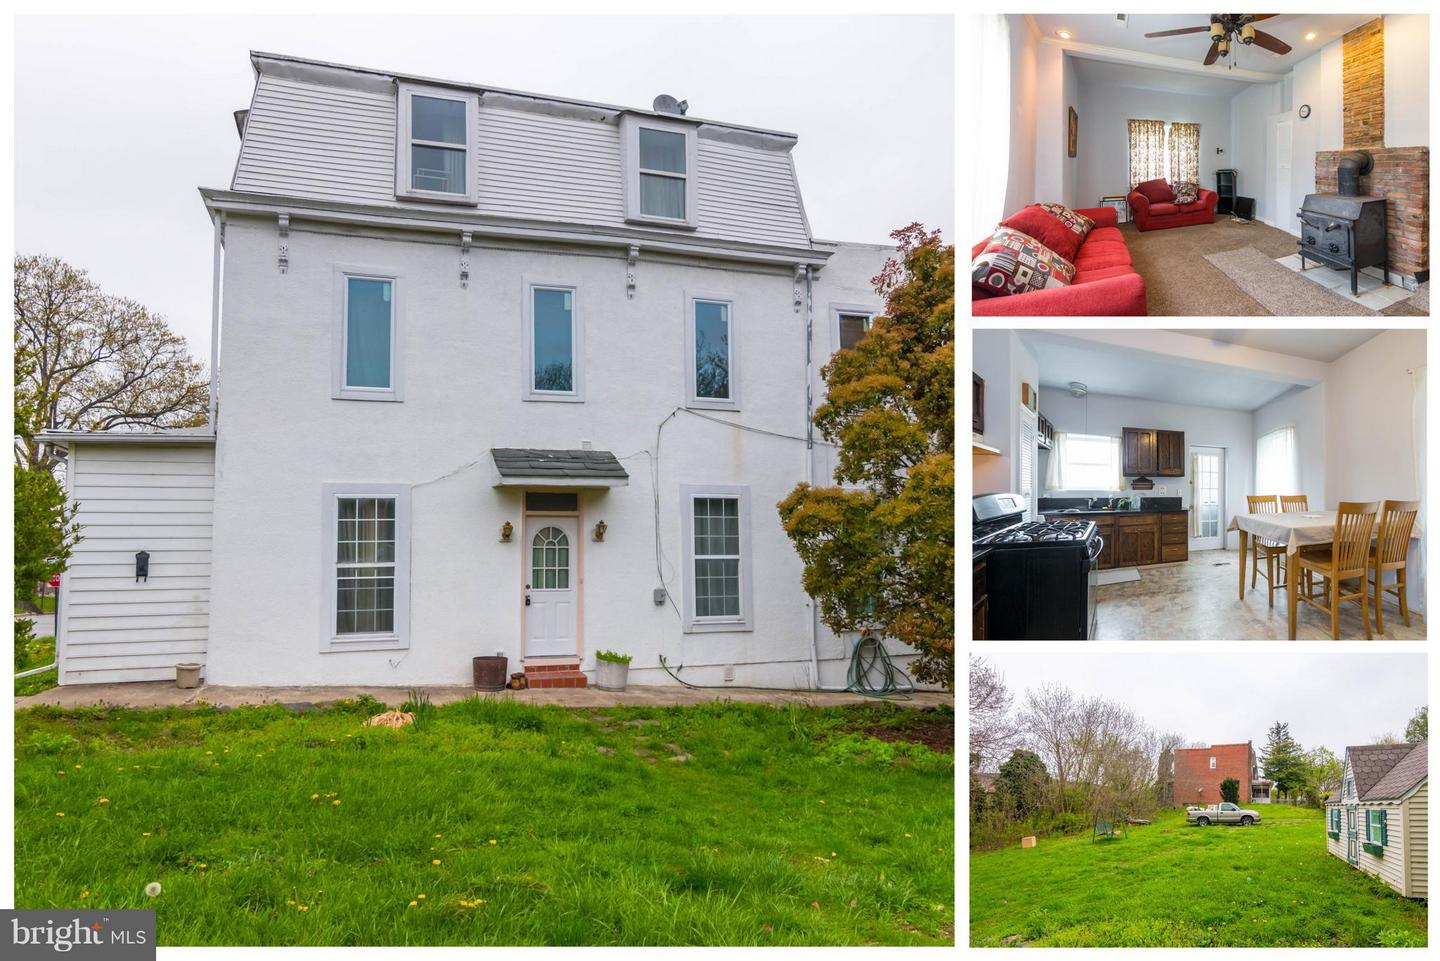 Single Family for Sale at 1445 Homestead St Baltimore, Maryland 21218 United States